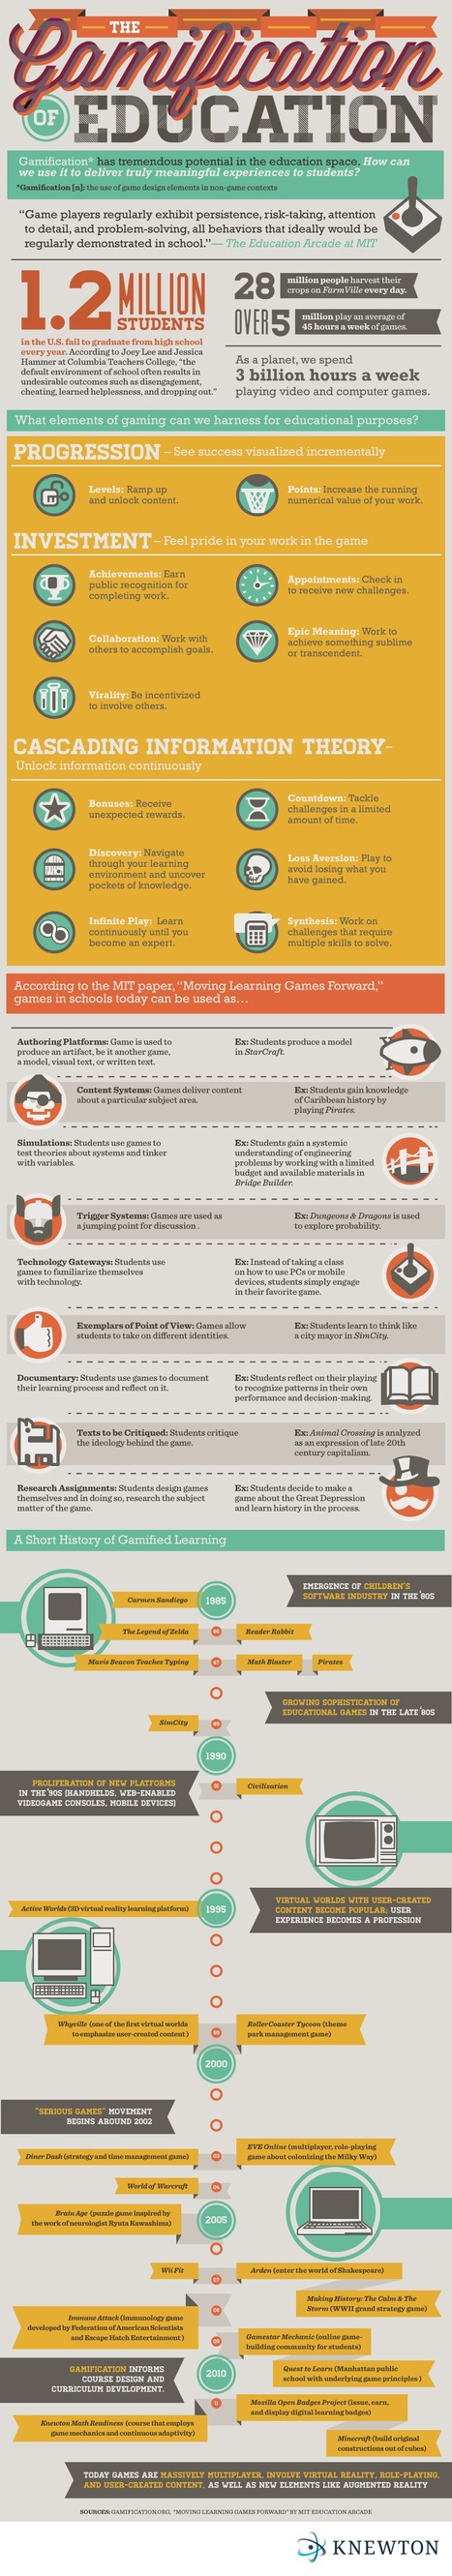 Infographic : The Gamification of Education | Transmedia lab | Scoop.it